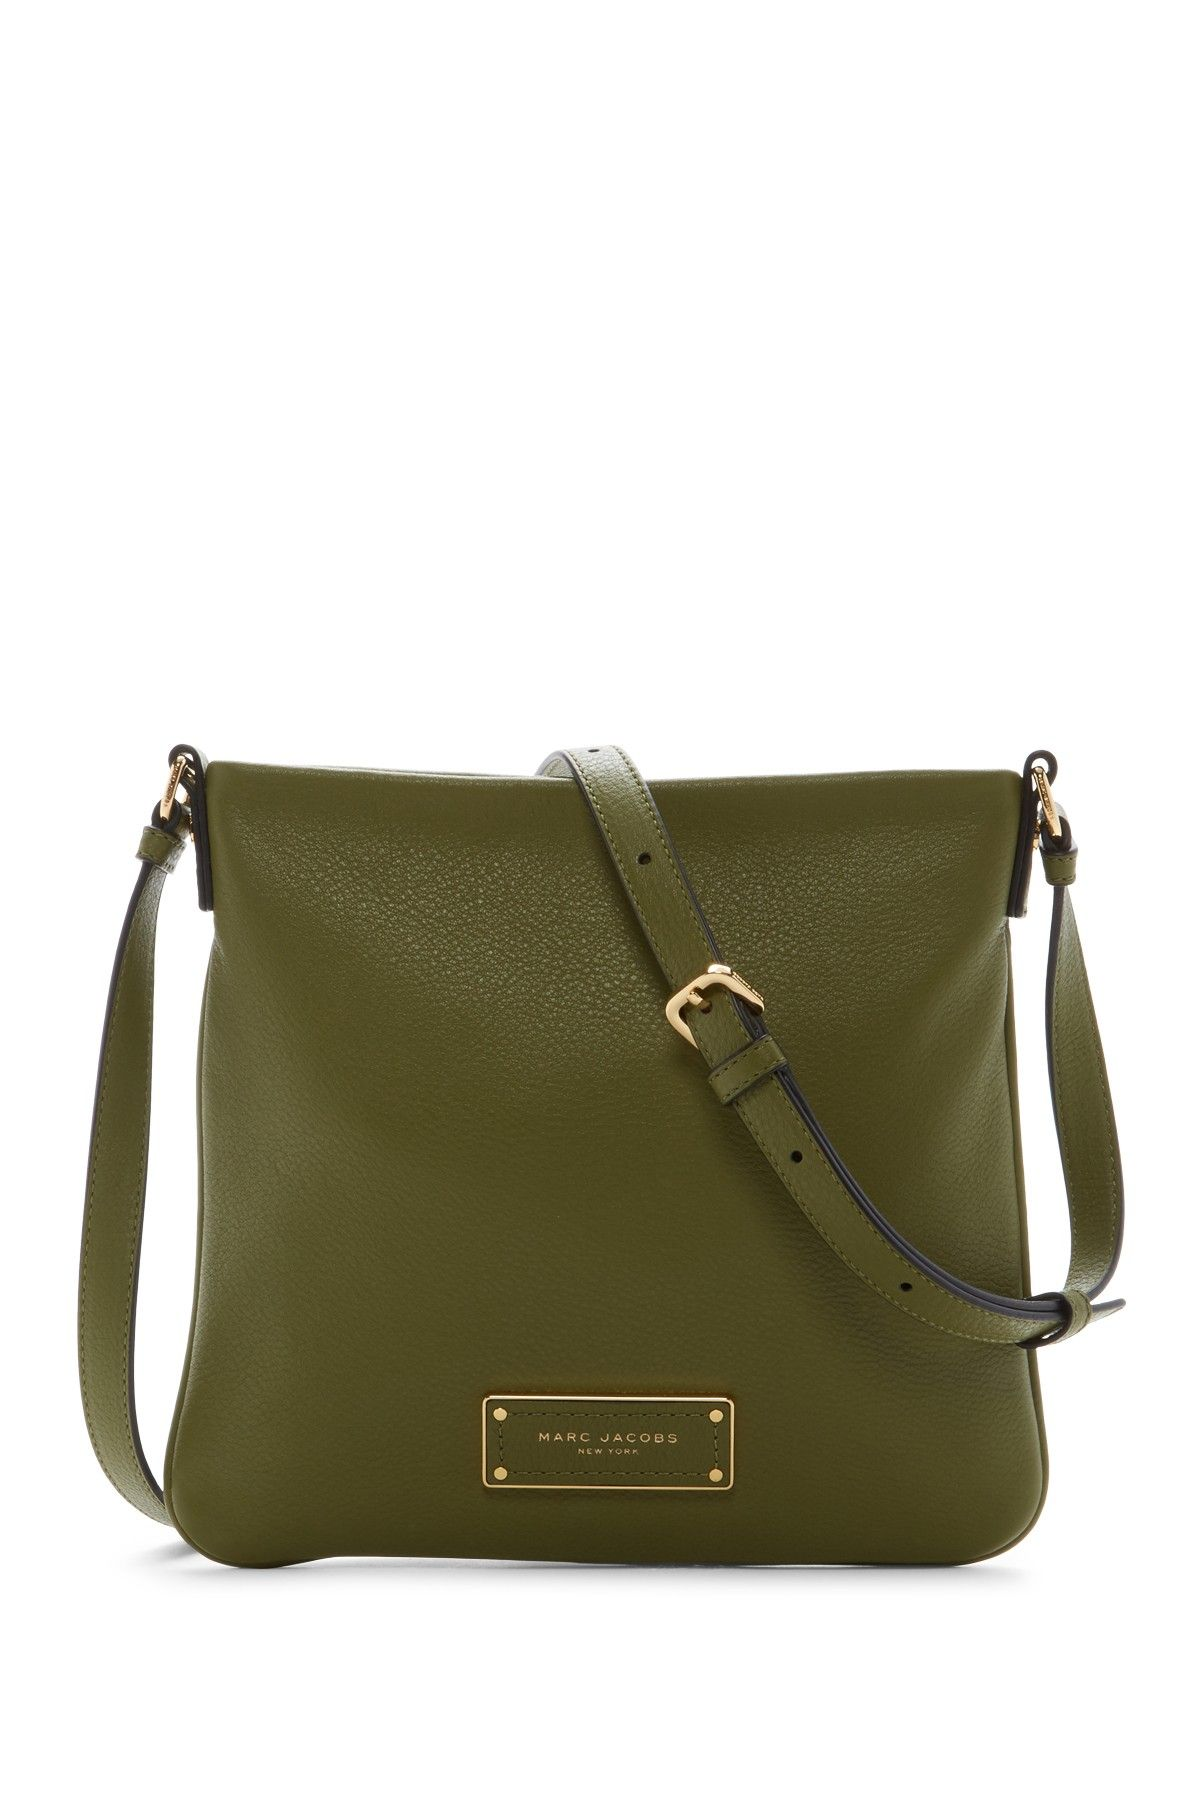 3d587c8578b87 Too Hot to Handle Sia Leather Crossbody Bag in avocado by Marc Jacobs on   nordstrom rack